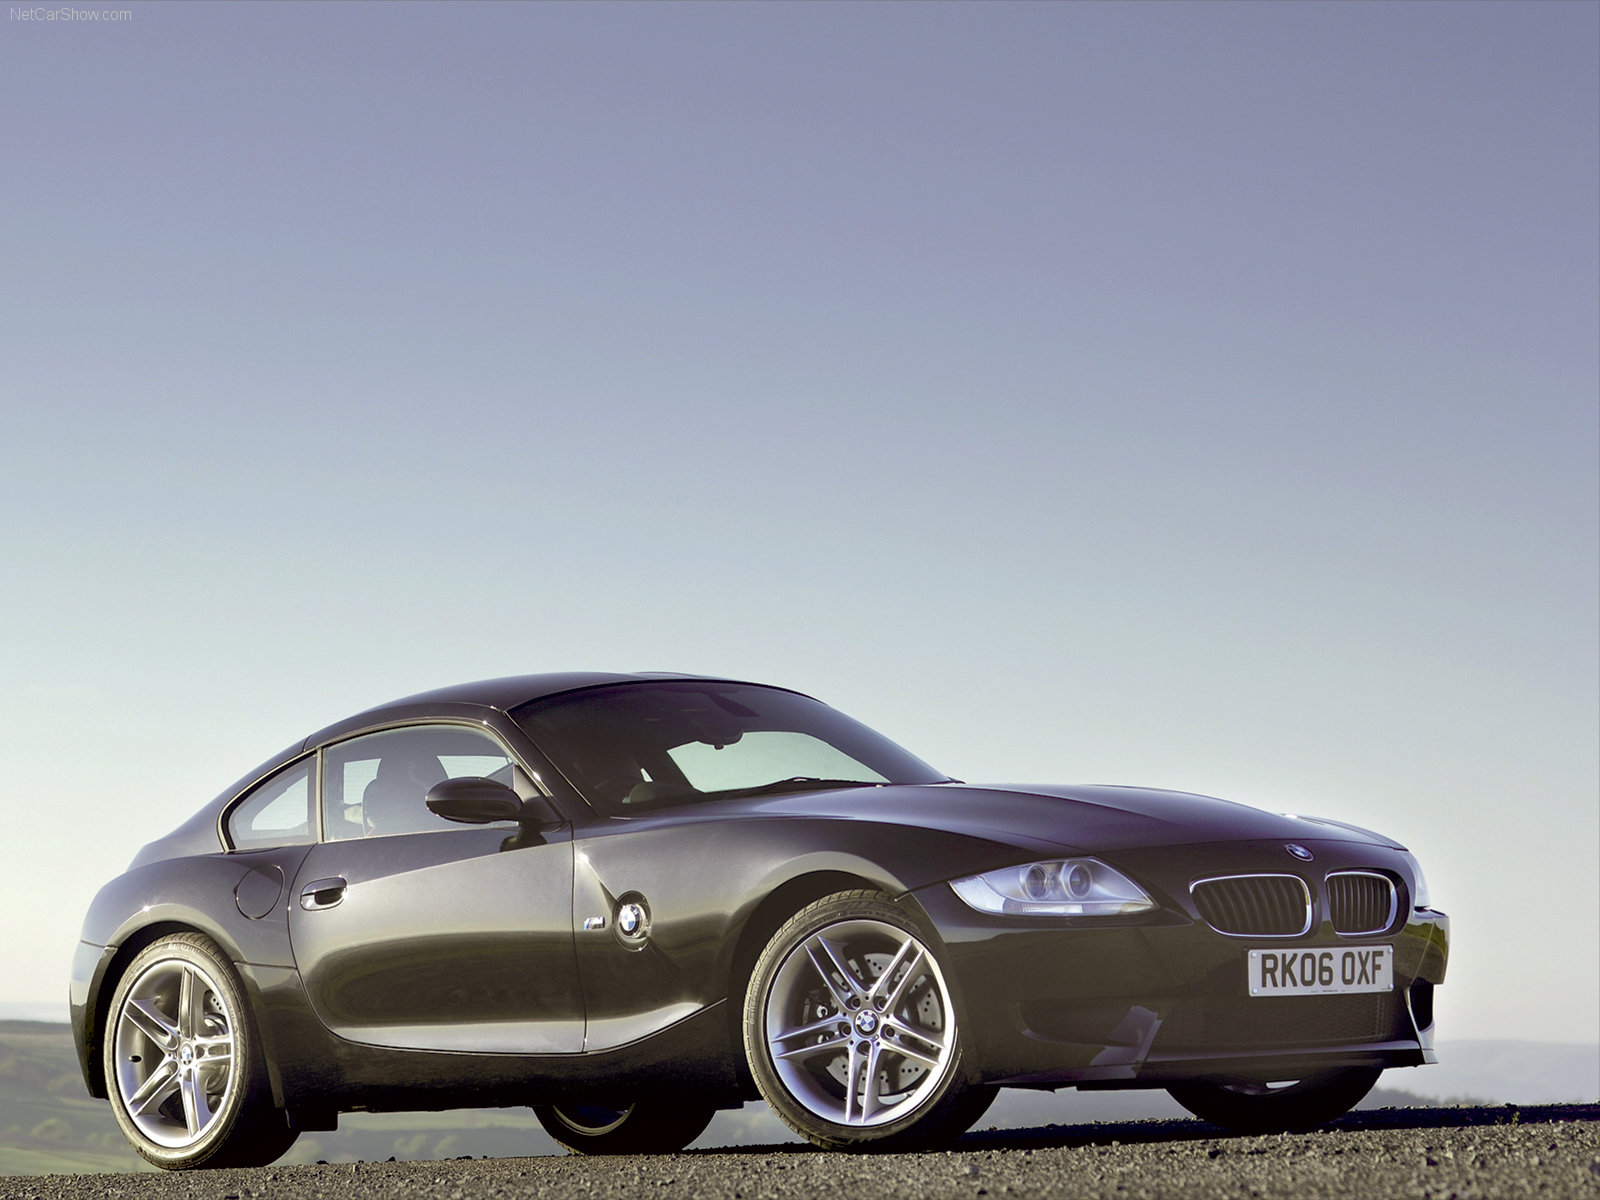 Bmw Z4 M Coupe Photos Photogallery With 27 Pics